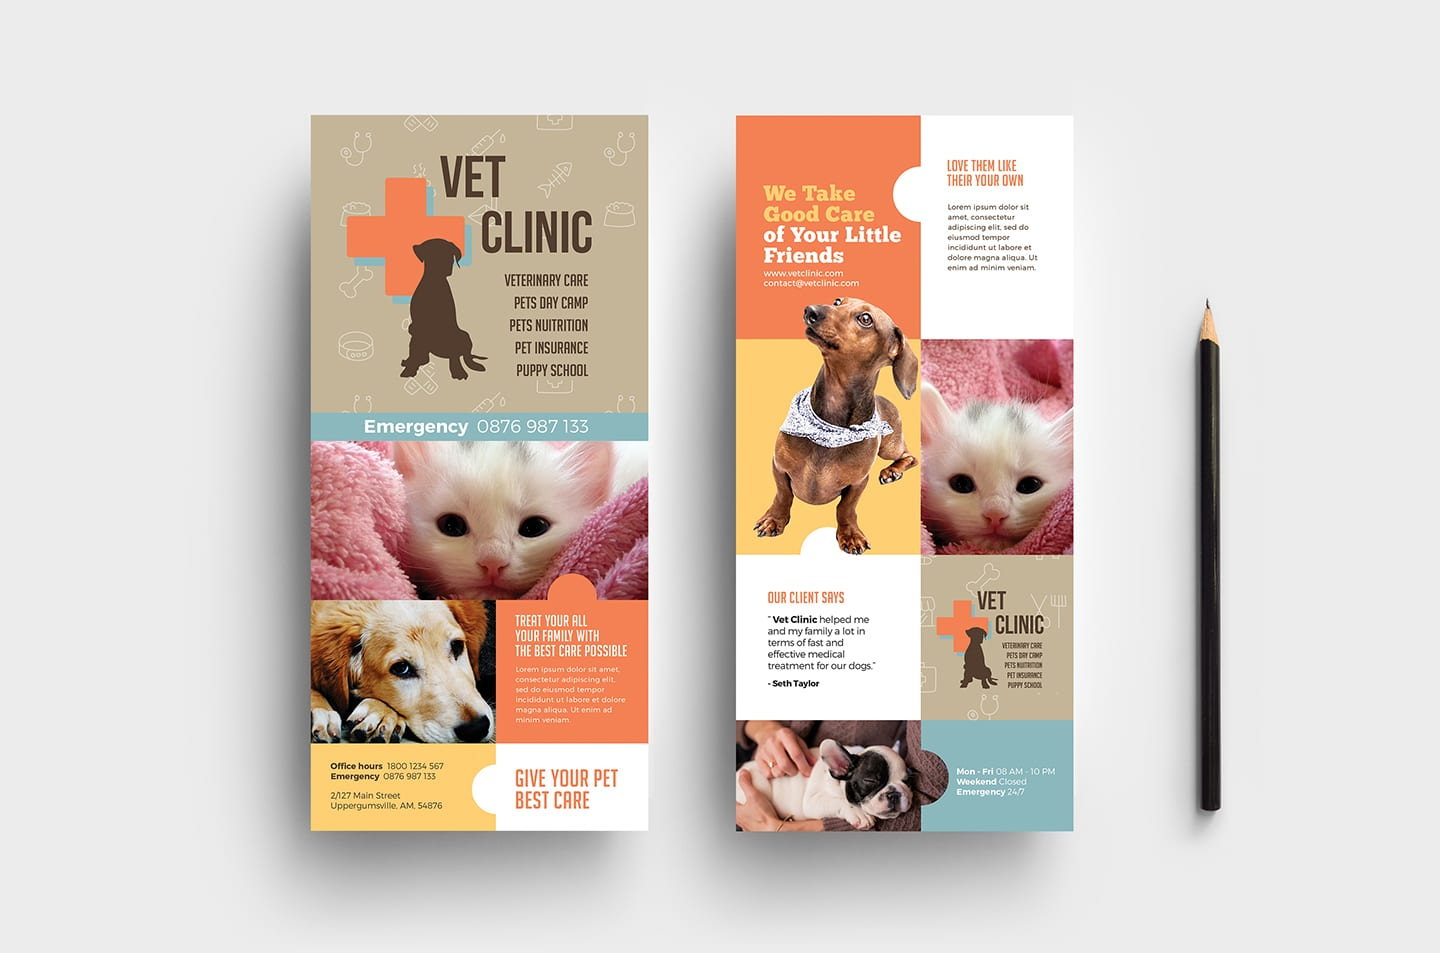 Vet Clinic DL Rack Card Template